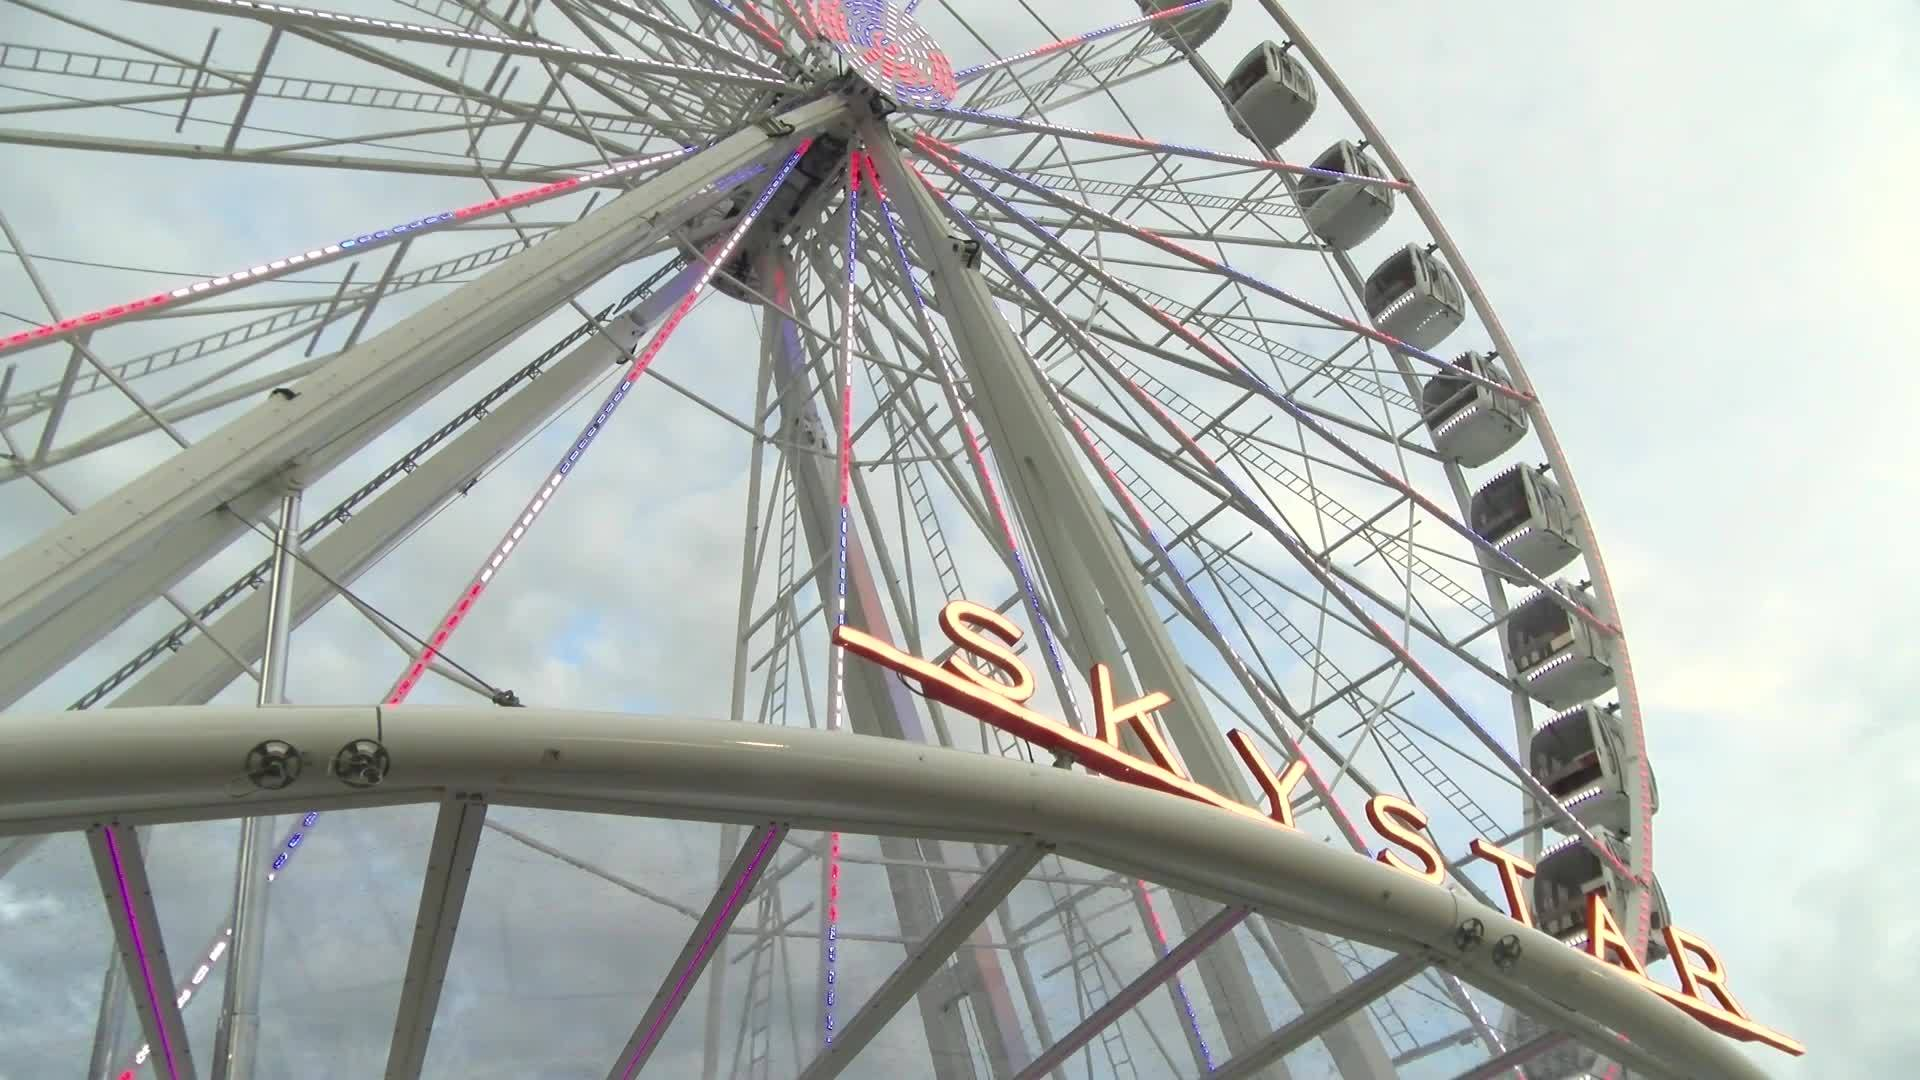 SkyStar_Wheel_0_20180611214352